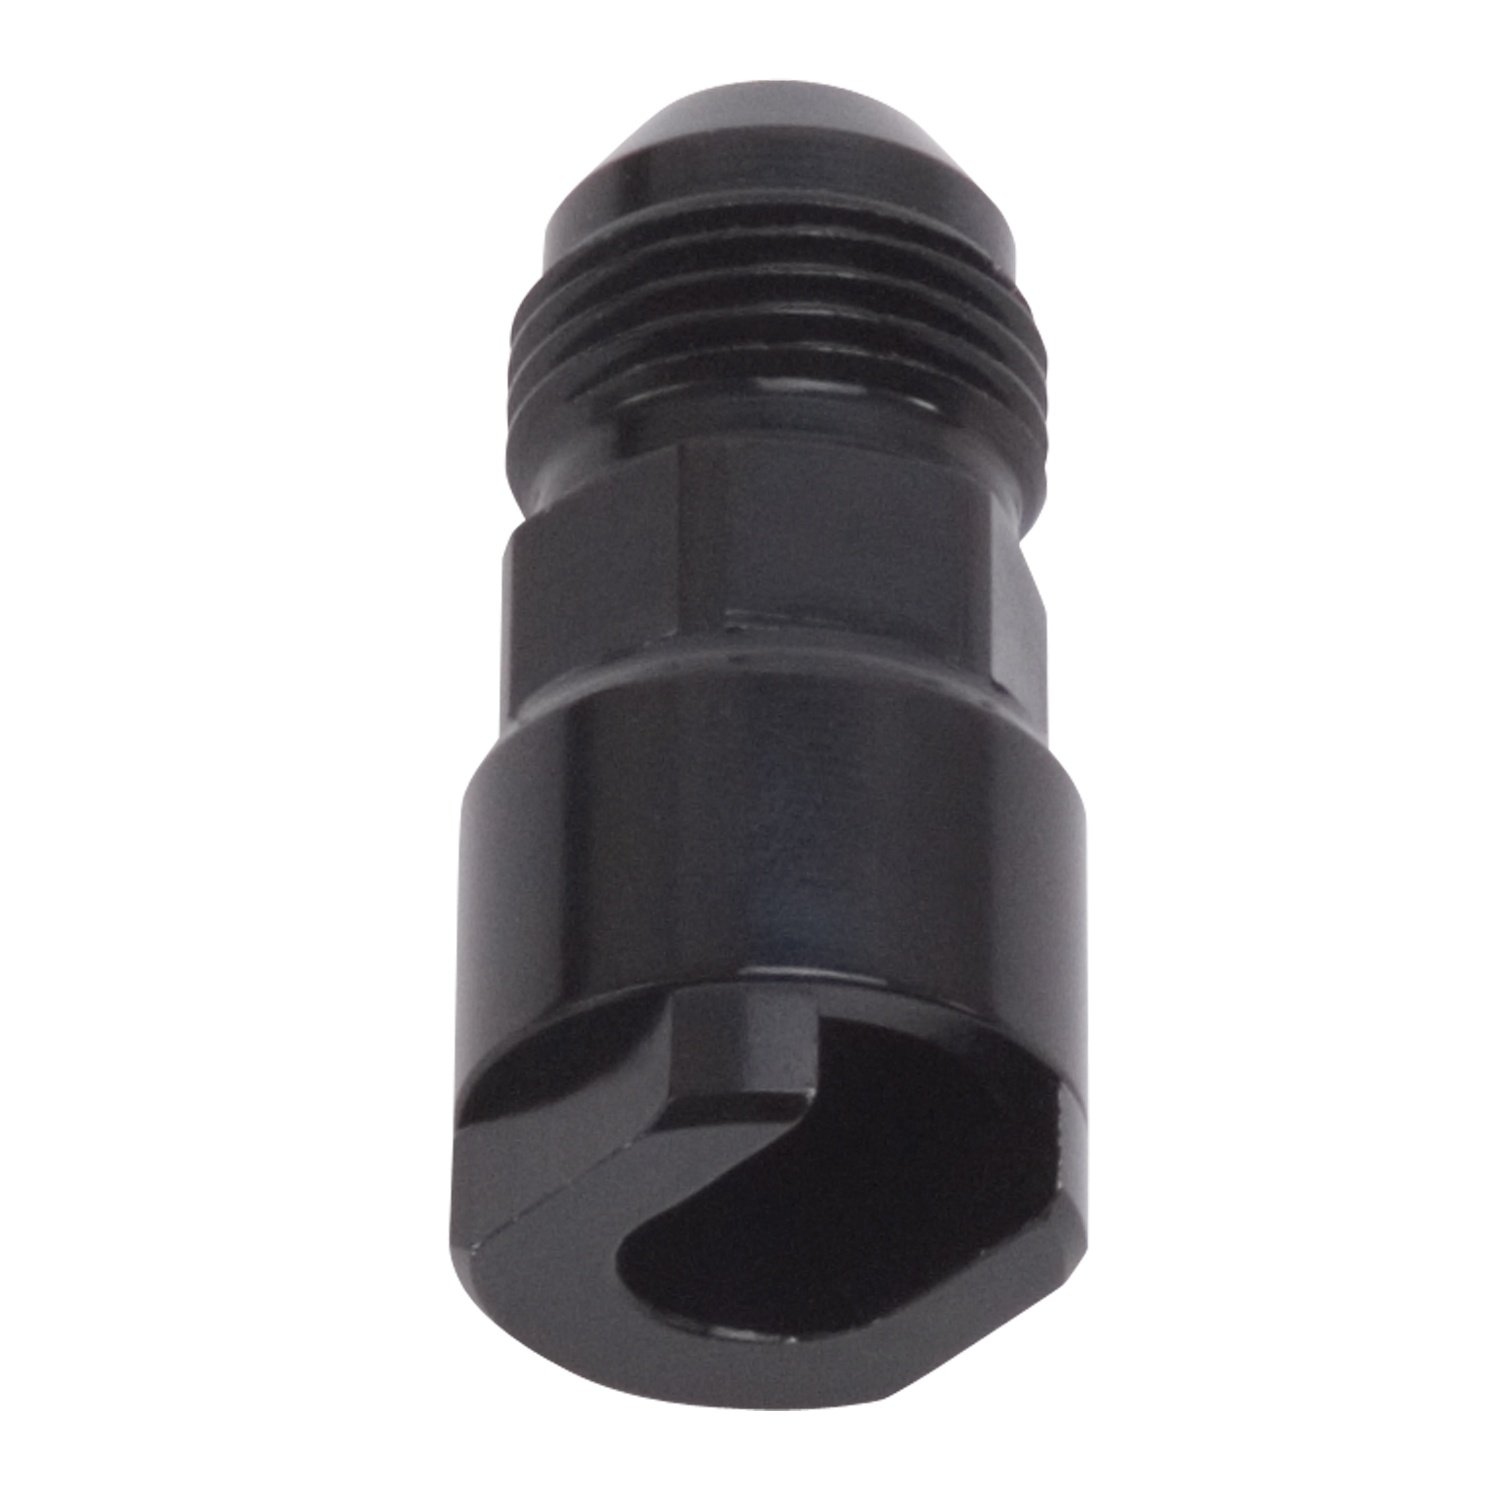 Russell 644133 Fuel Adapter Fitting by Russell